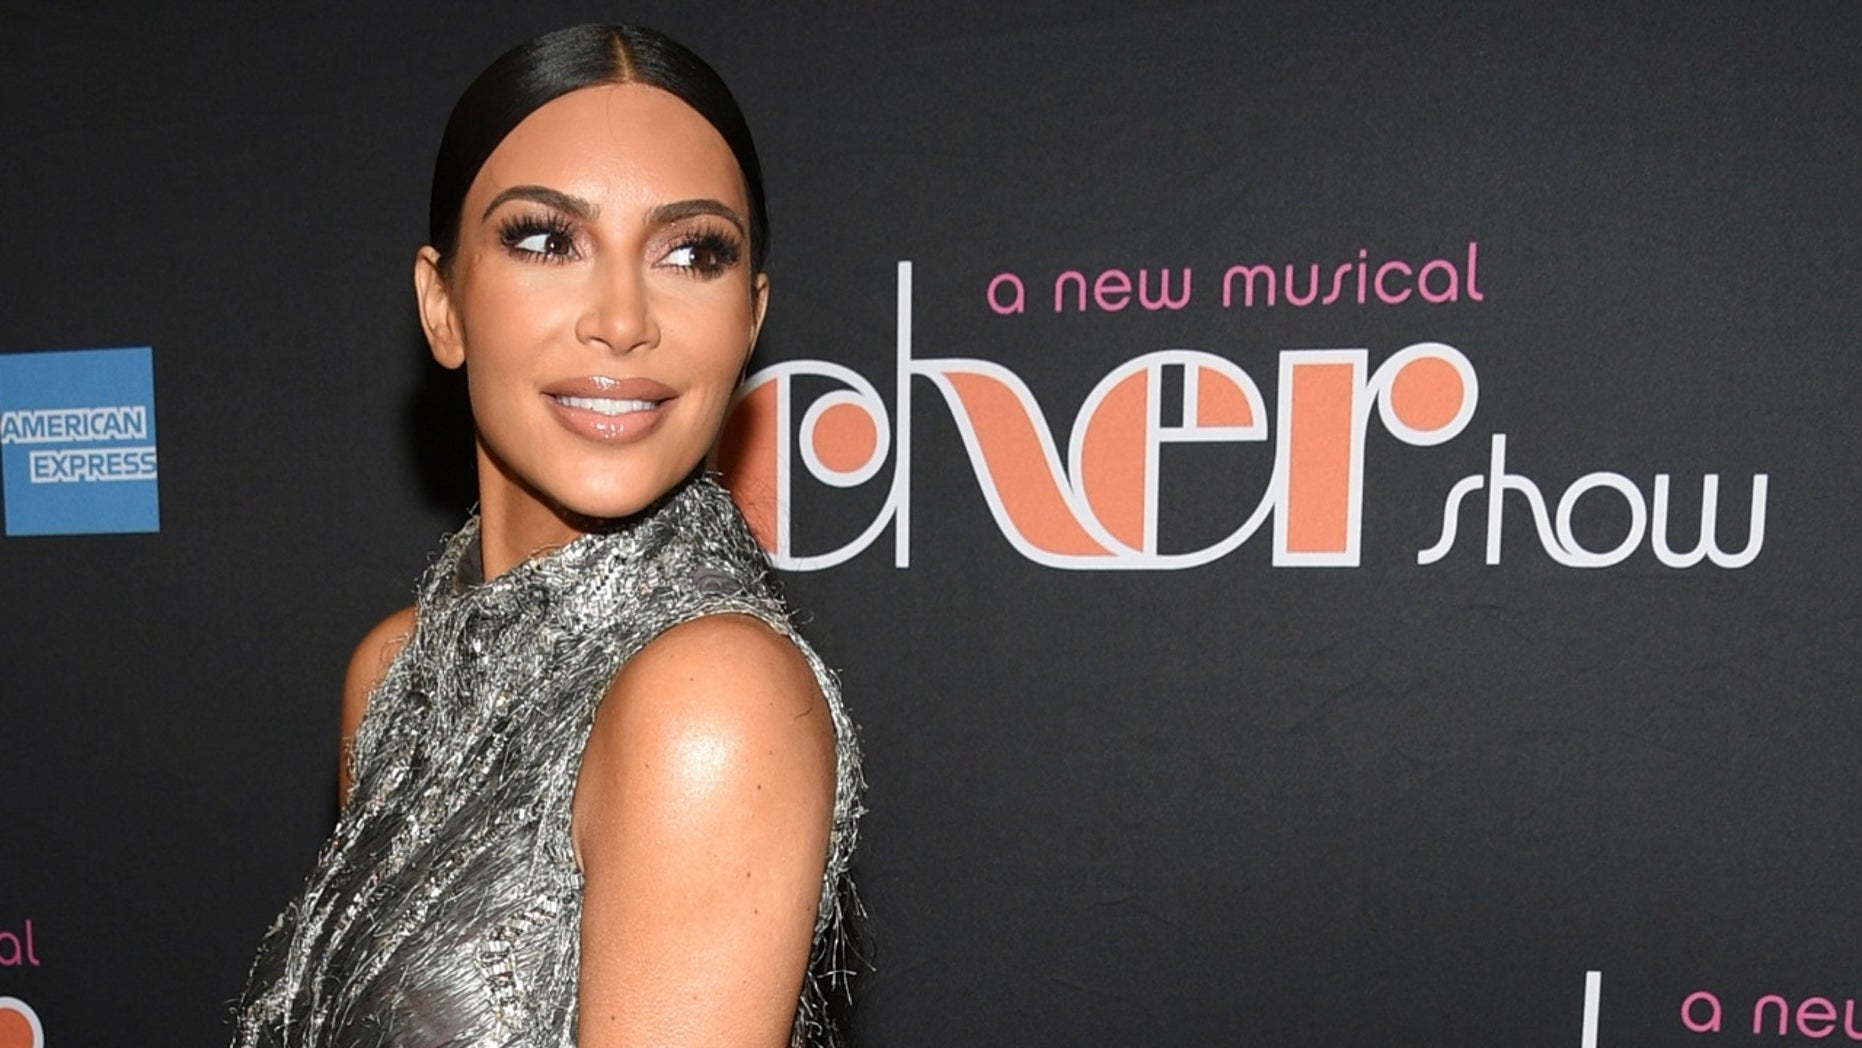 Kim Kardashian applauded New Zealand's lawmakers for proposing to change the country's gun laws following the mosque shootings that left at least 49 people dead